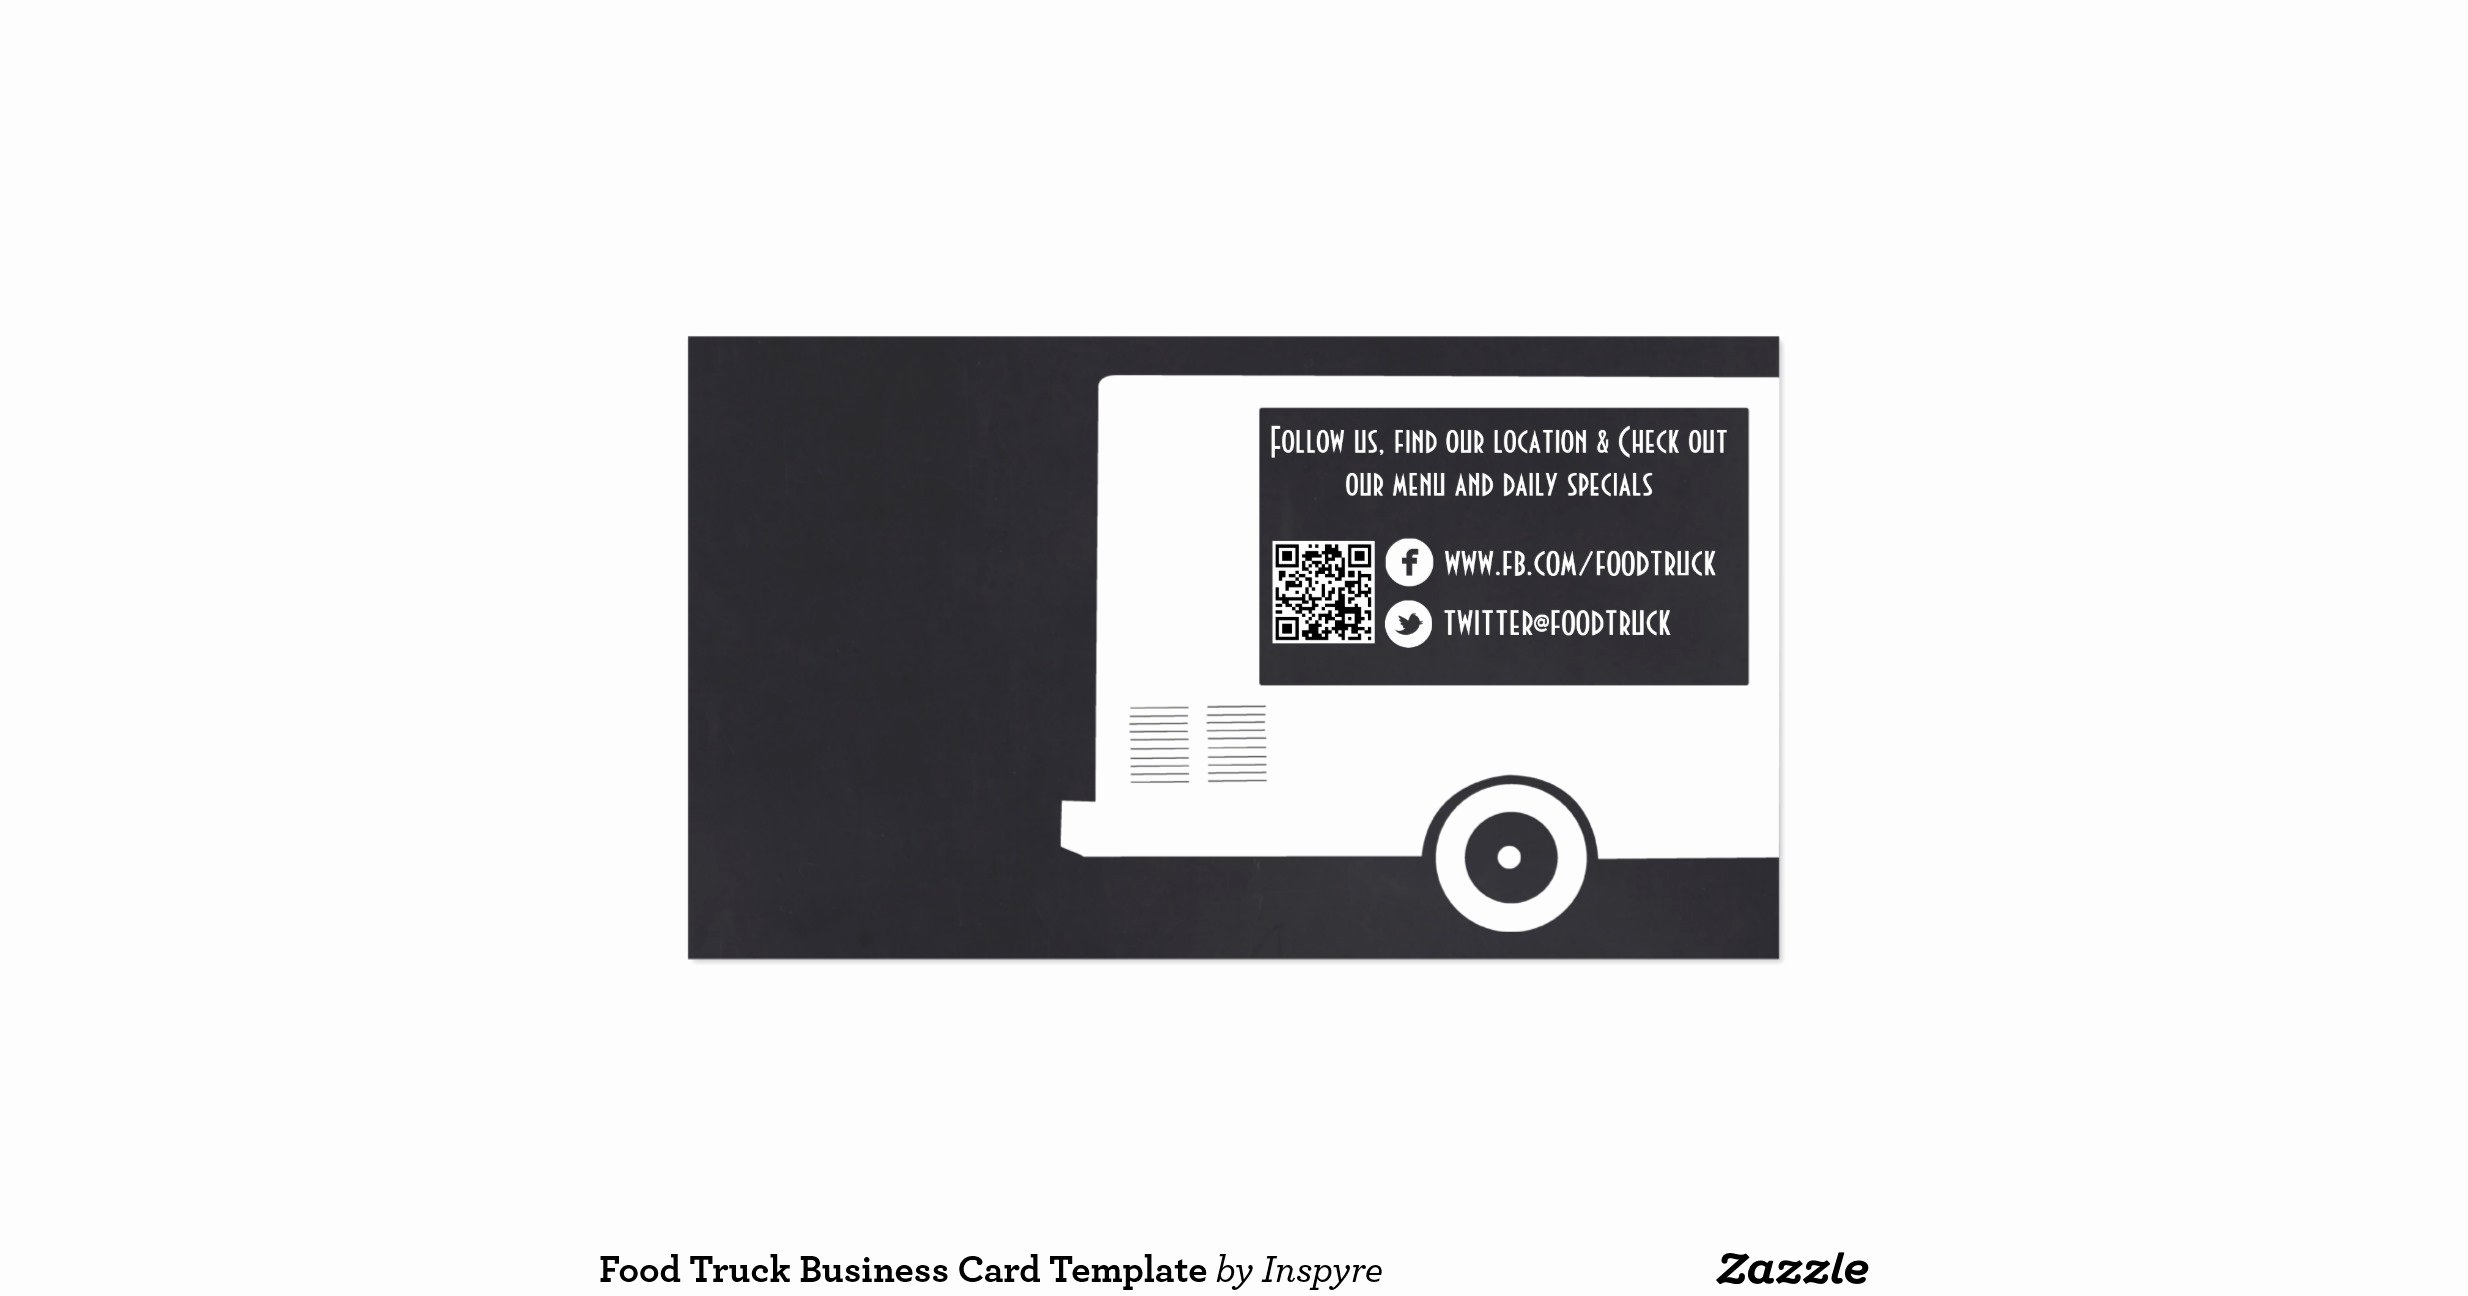 Food Truck Business Plan Template Luxury Food Truck Business Card Template